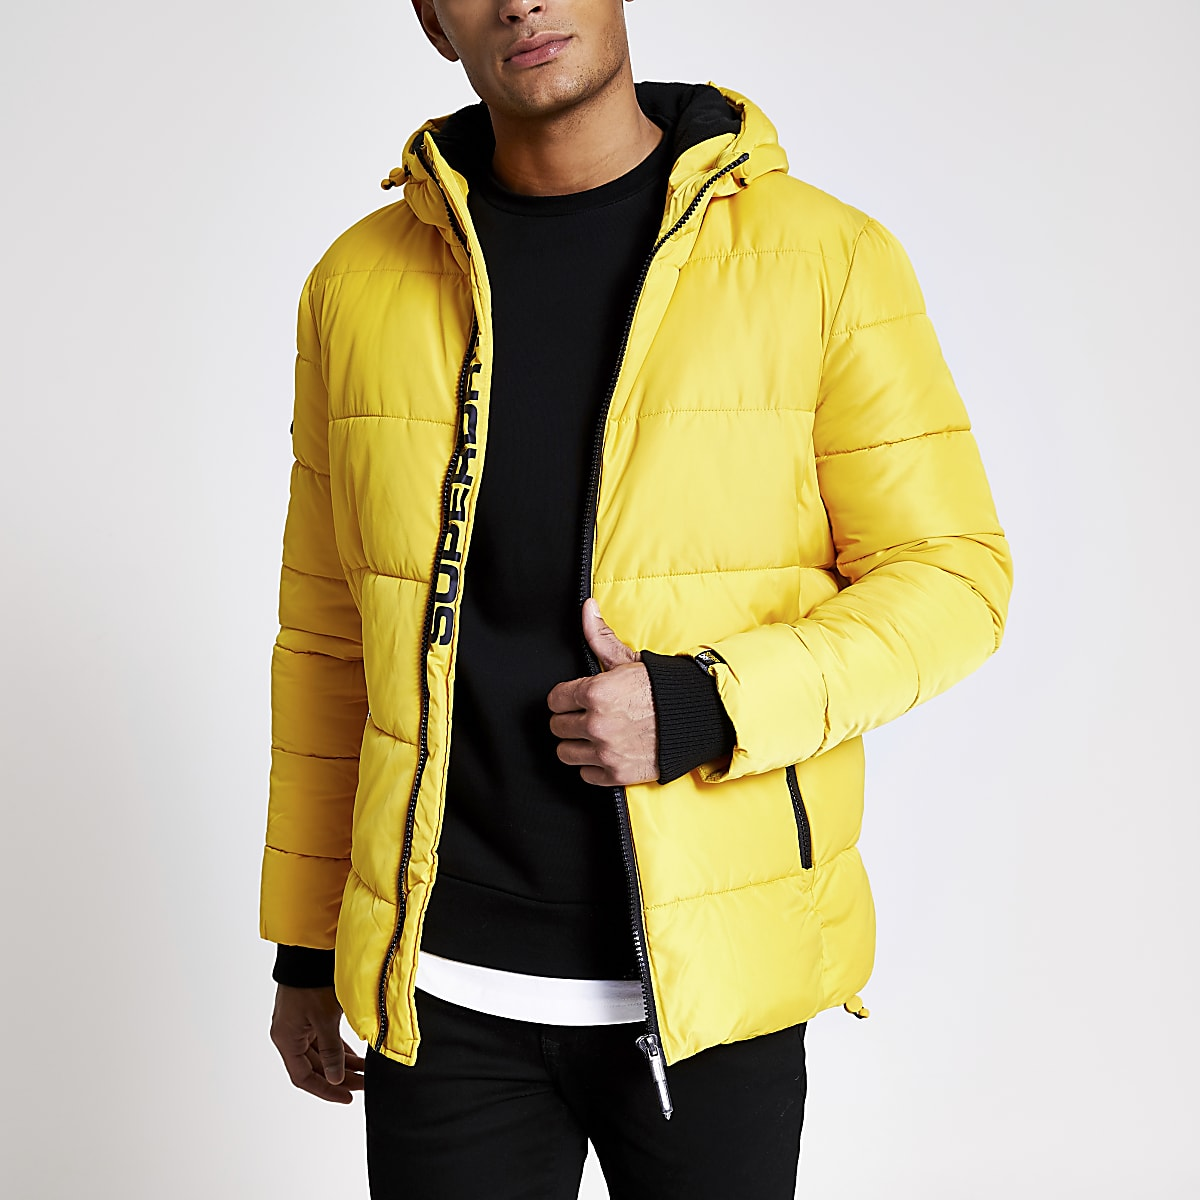 Superdry yellow puffer jacket